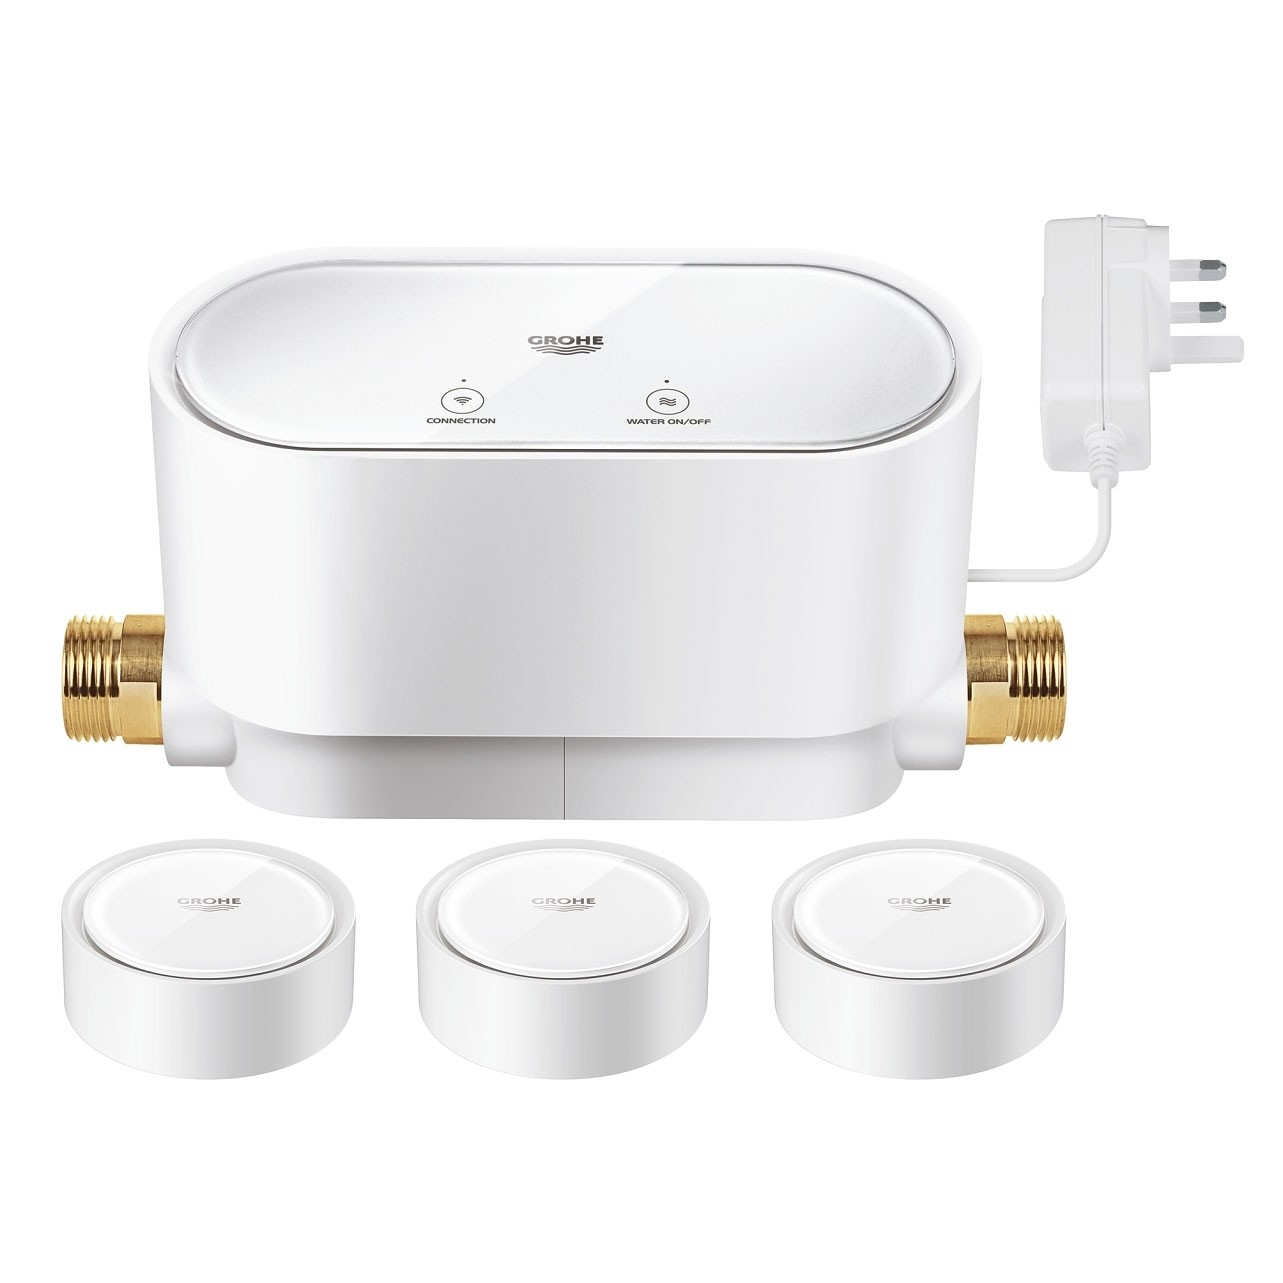 Grohe Smart Sense Leak Protection System